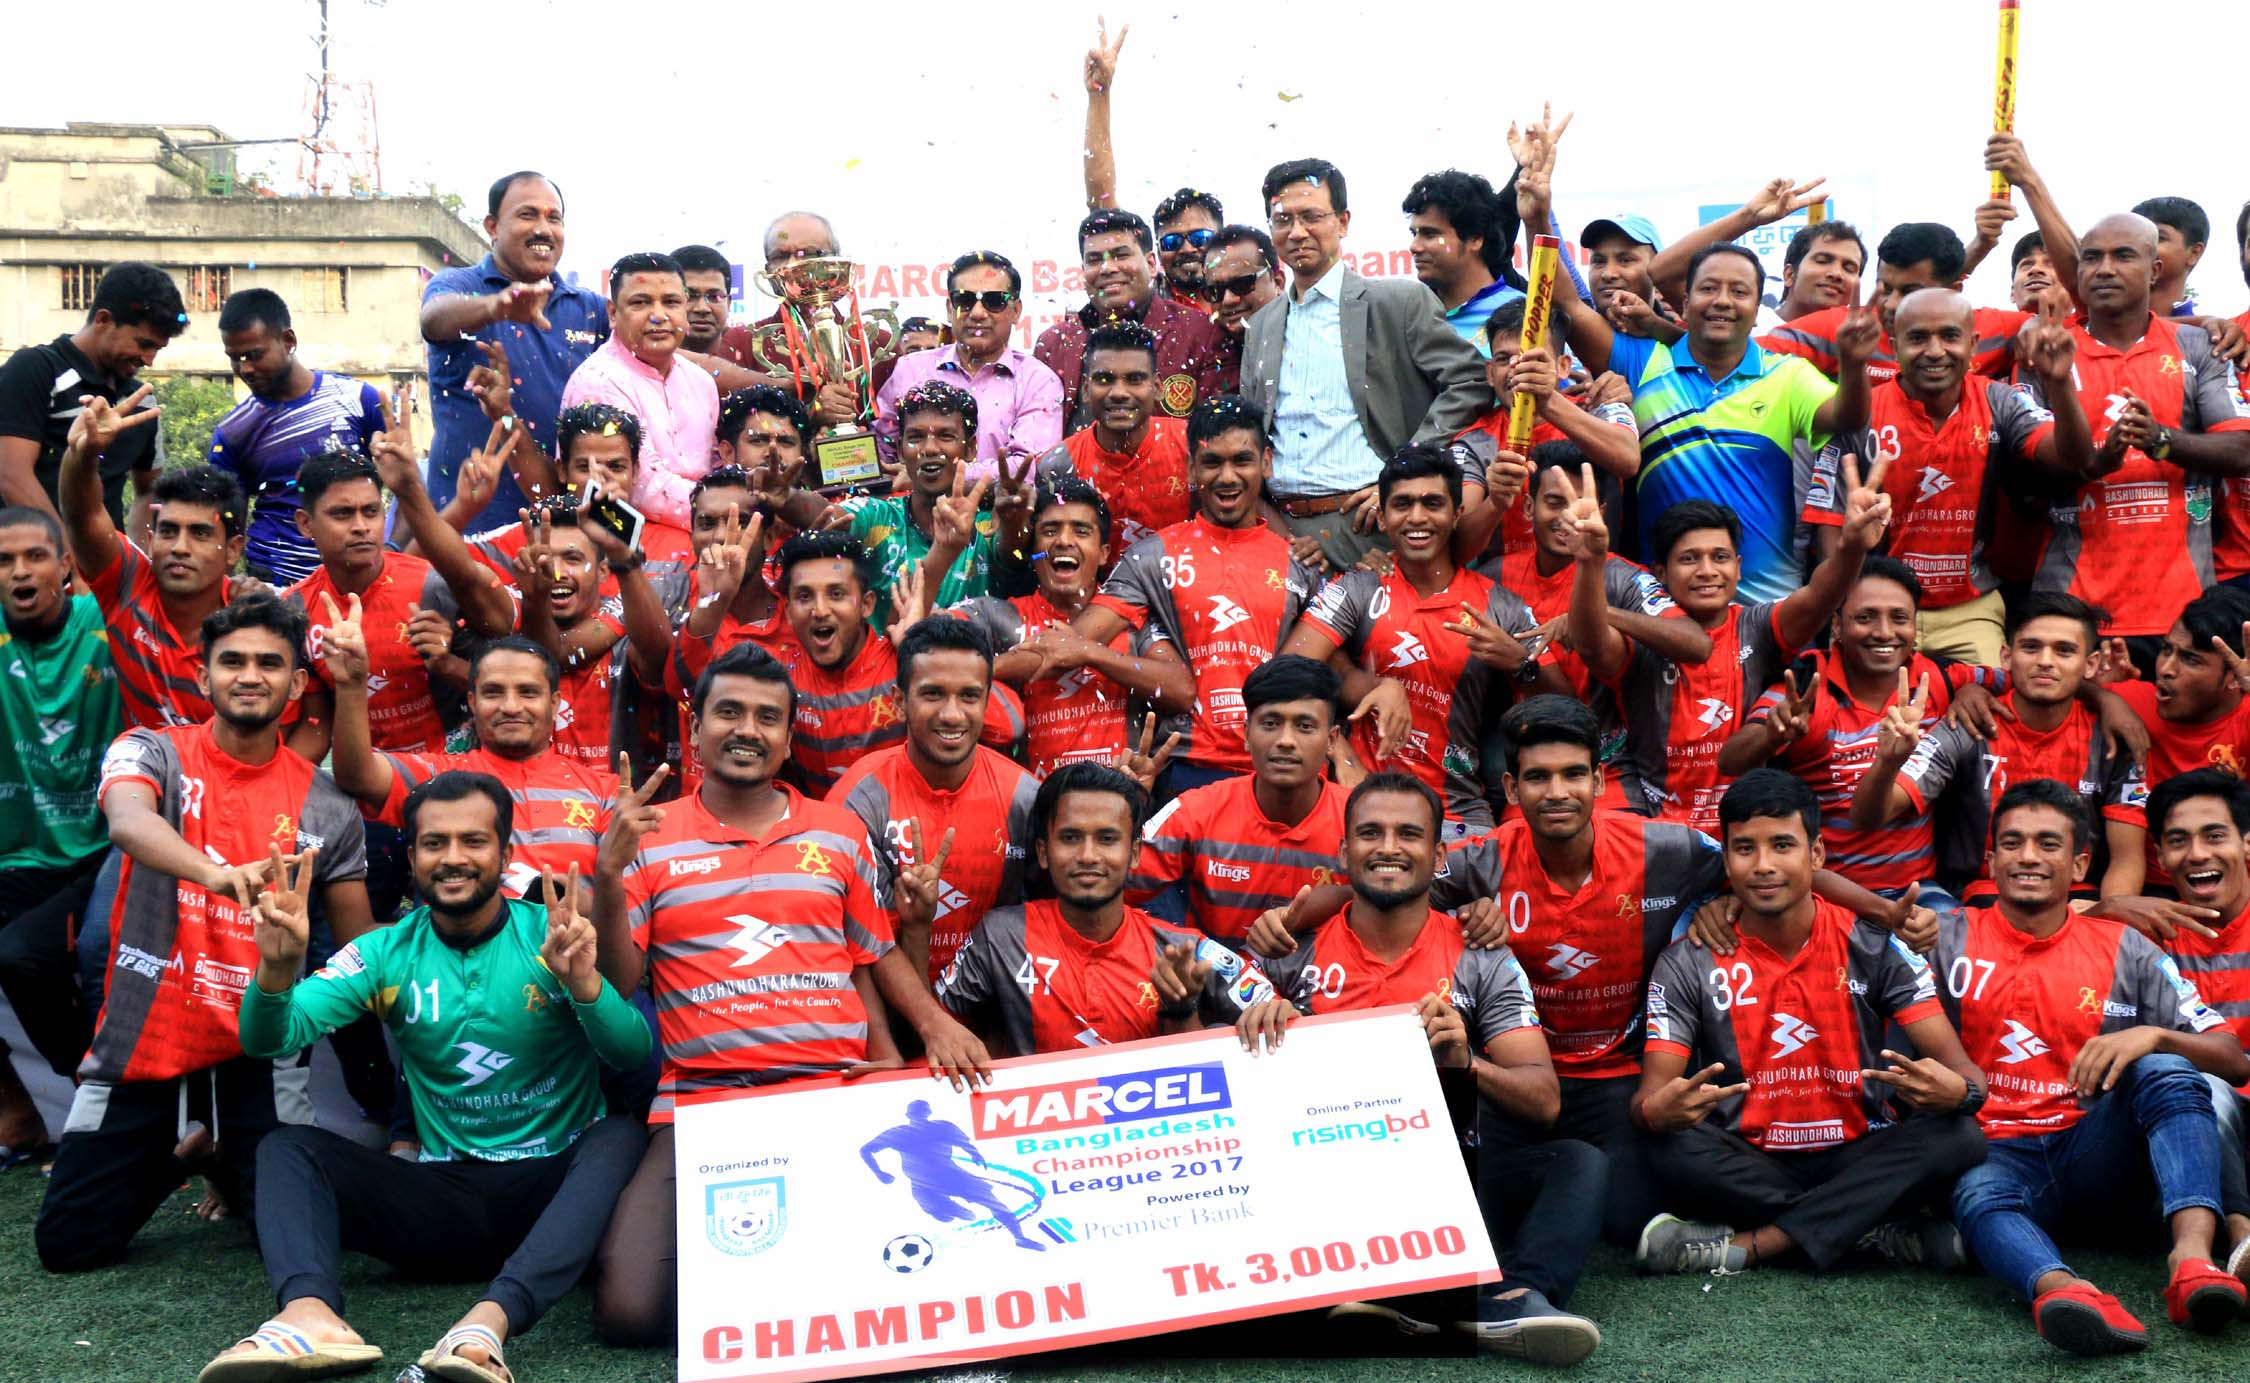 Bashundhara Kings XI, the champions of the Marcel Bangladesh Championship League Football with the guests and officials of Bangladesh Football Federation pose for photograph at the Bir Shreshtha Shaheed Sepoy Mohammad Mostafa Kamal Stadium in the city's Kamalapur on Saturday.